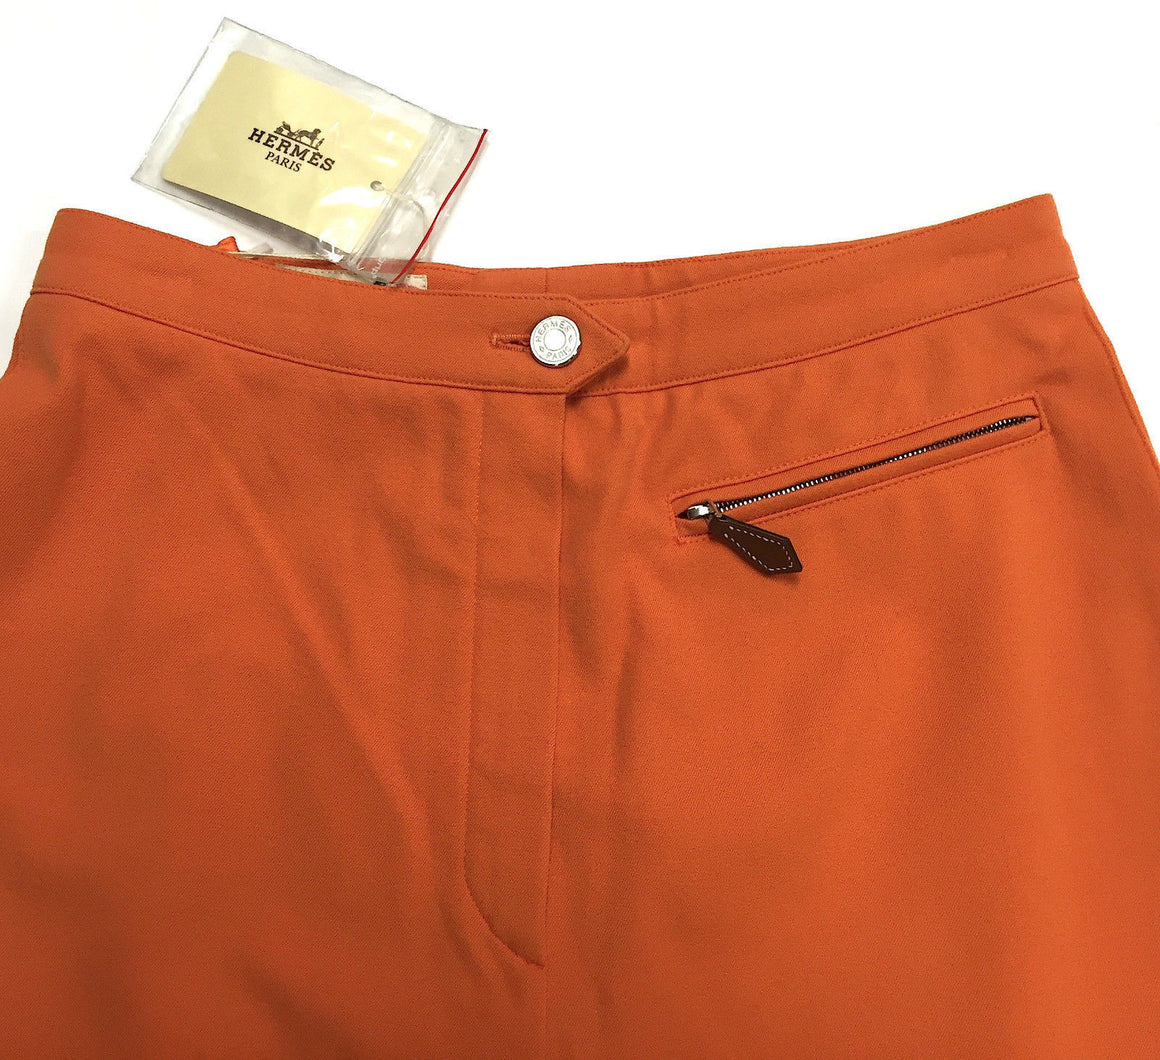 bisbiz.com HERMES   Vintage Hermes Orange Cotton-blend Riding Pants - Bis Luxury Resale